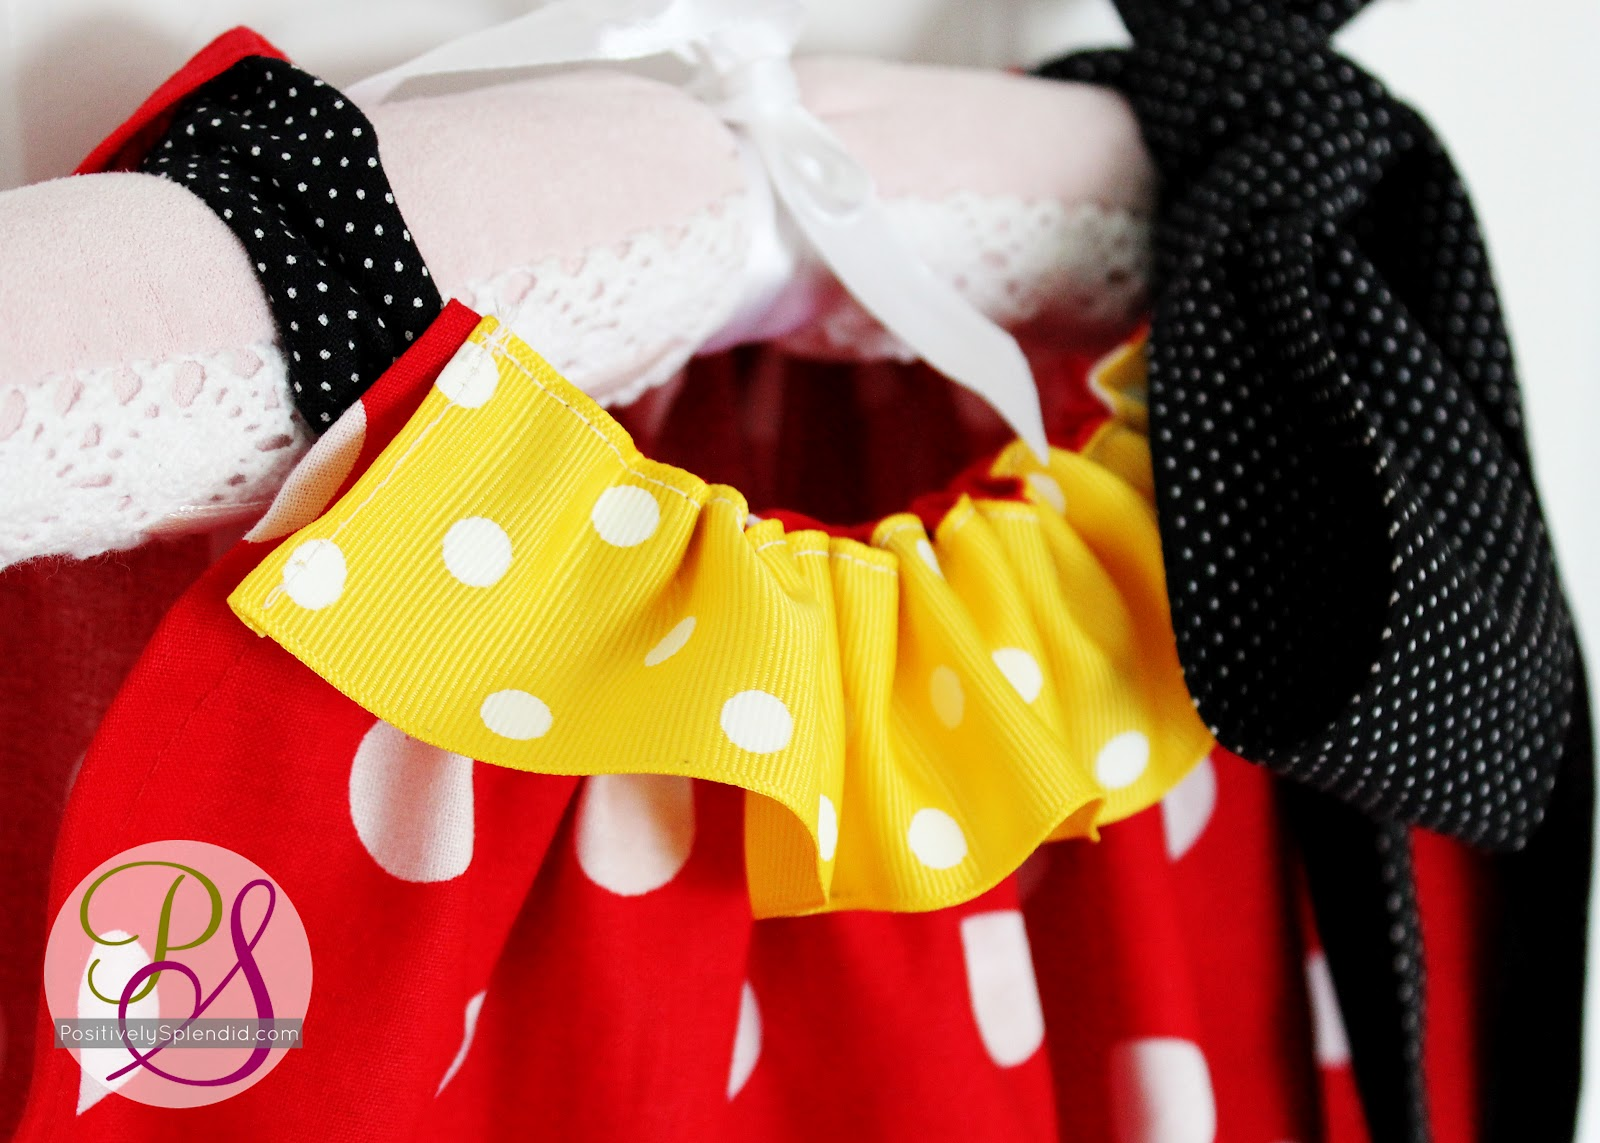 Diy Disney Pillowcase: DIY Disney Outfits for Boys and Girls,